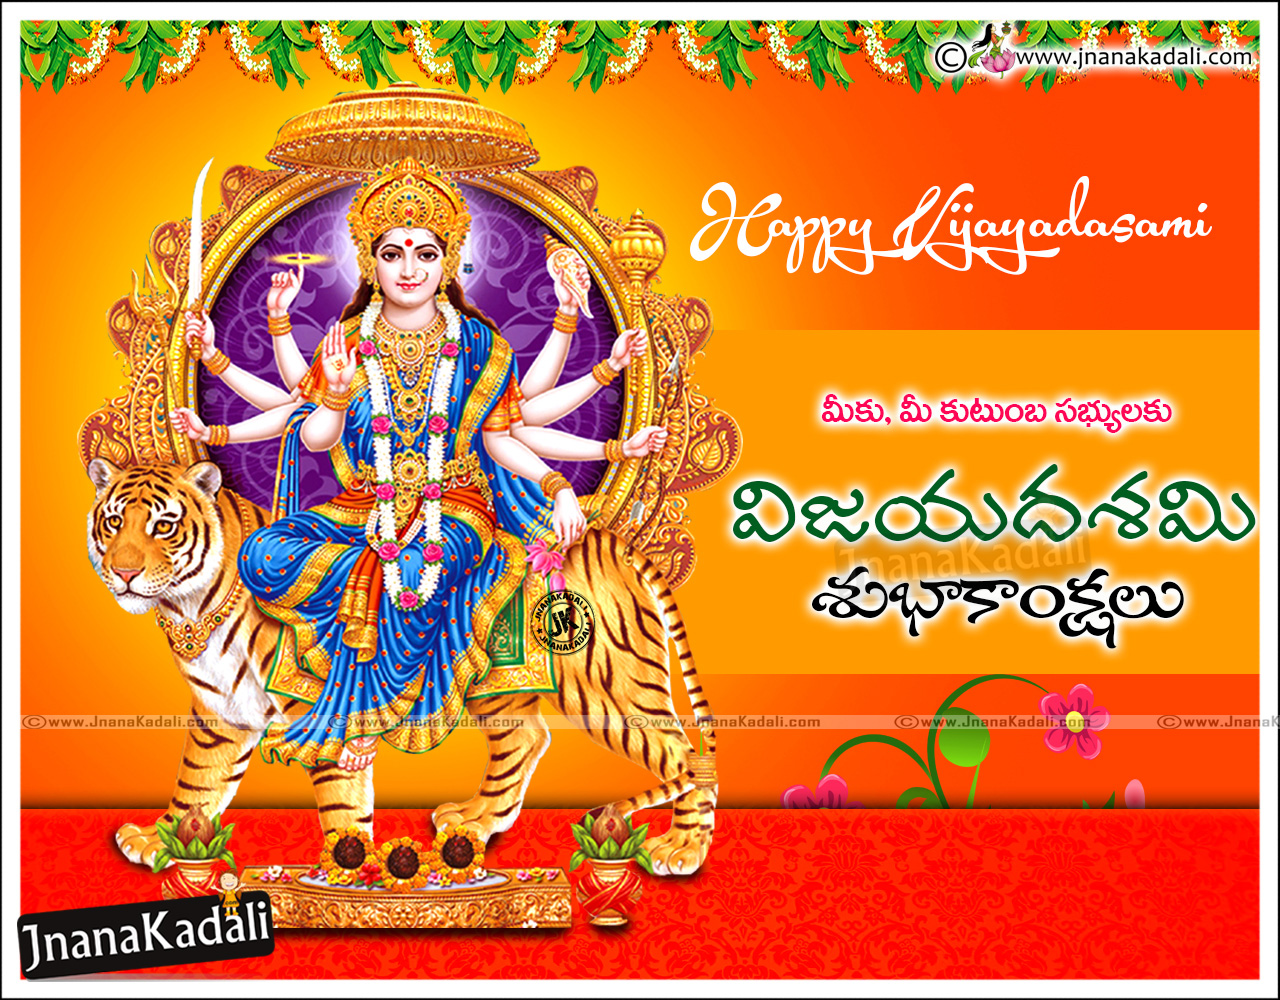 Top telugu vijayadasami telugu quotes greetings dussehra telugu best telugu vijayadasami festival telugu quotes hd wallpapers in telugu vijayadasami greetings online free vijayadashami wishes m4hsunfo